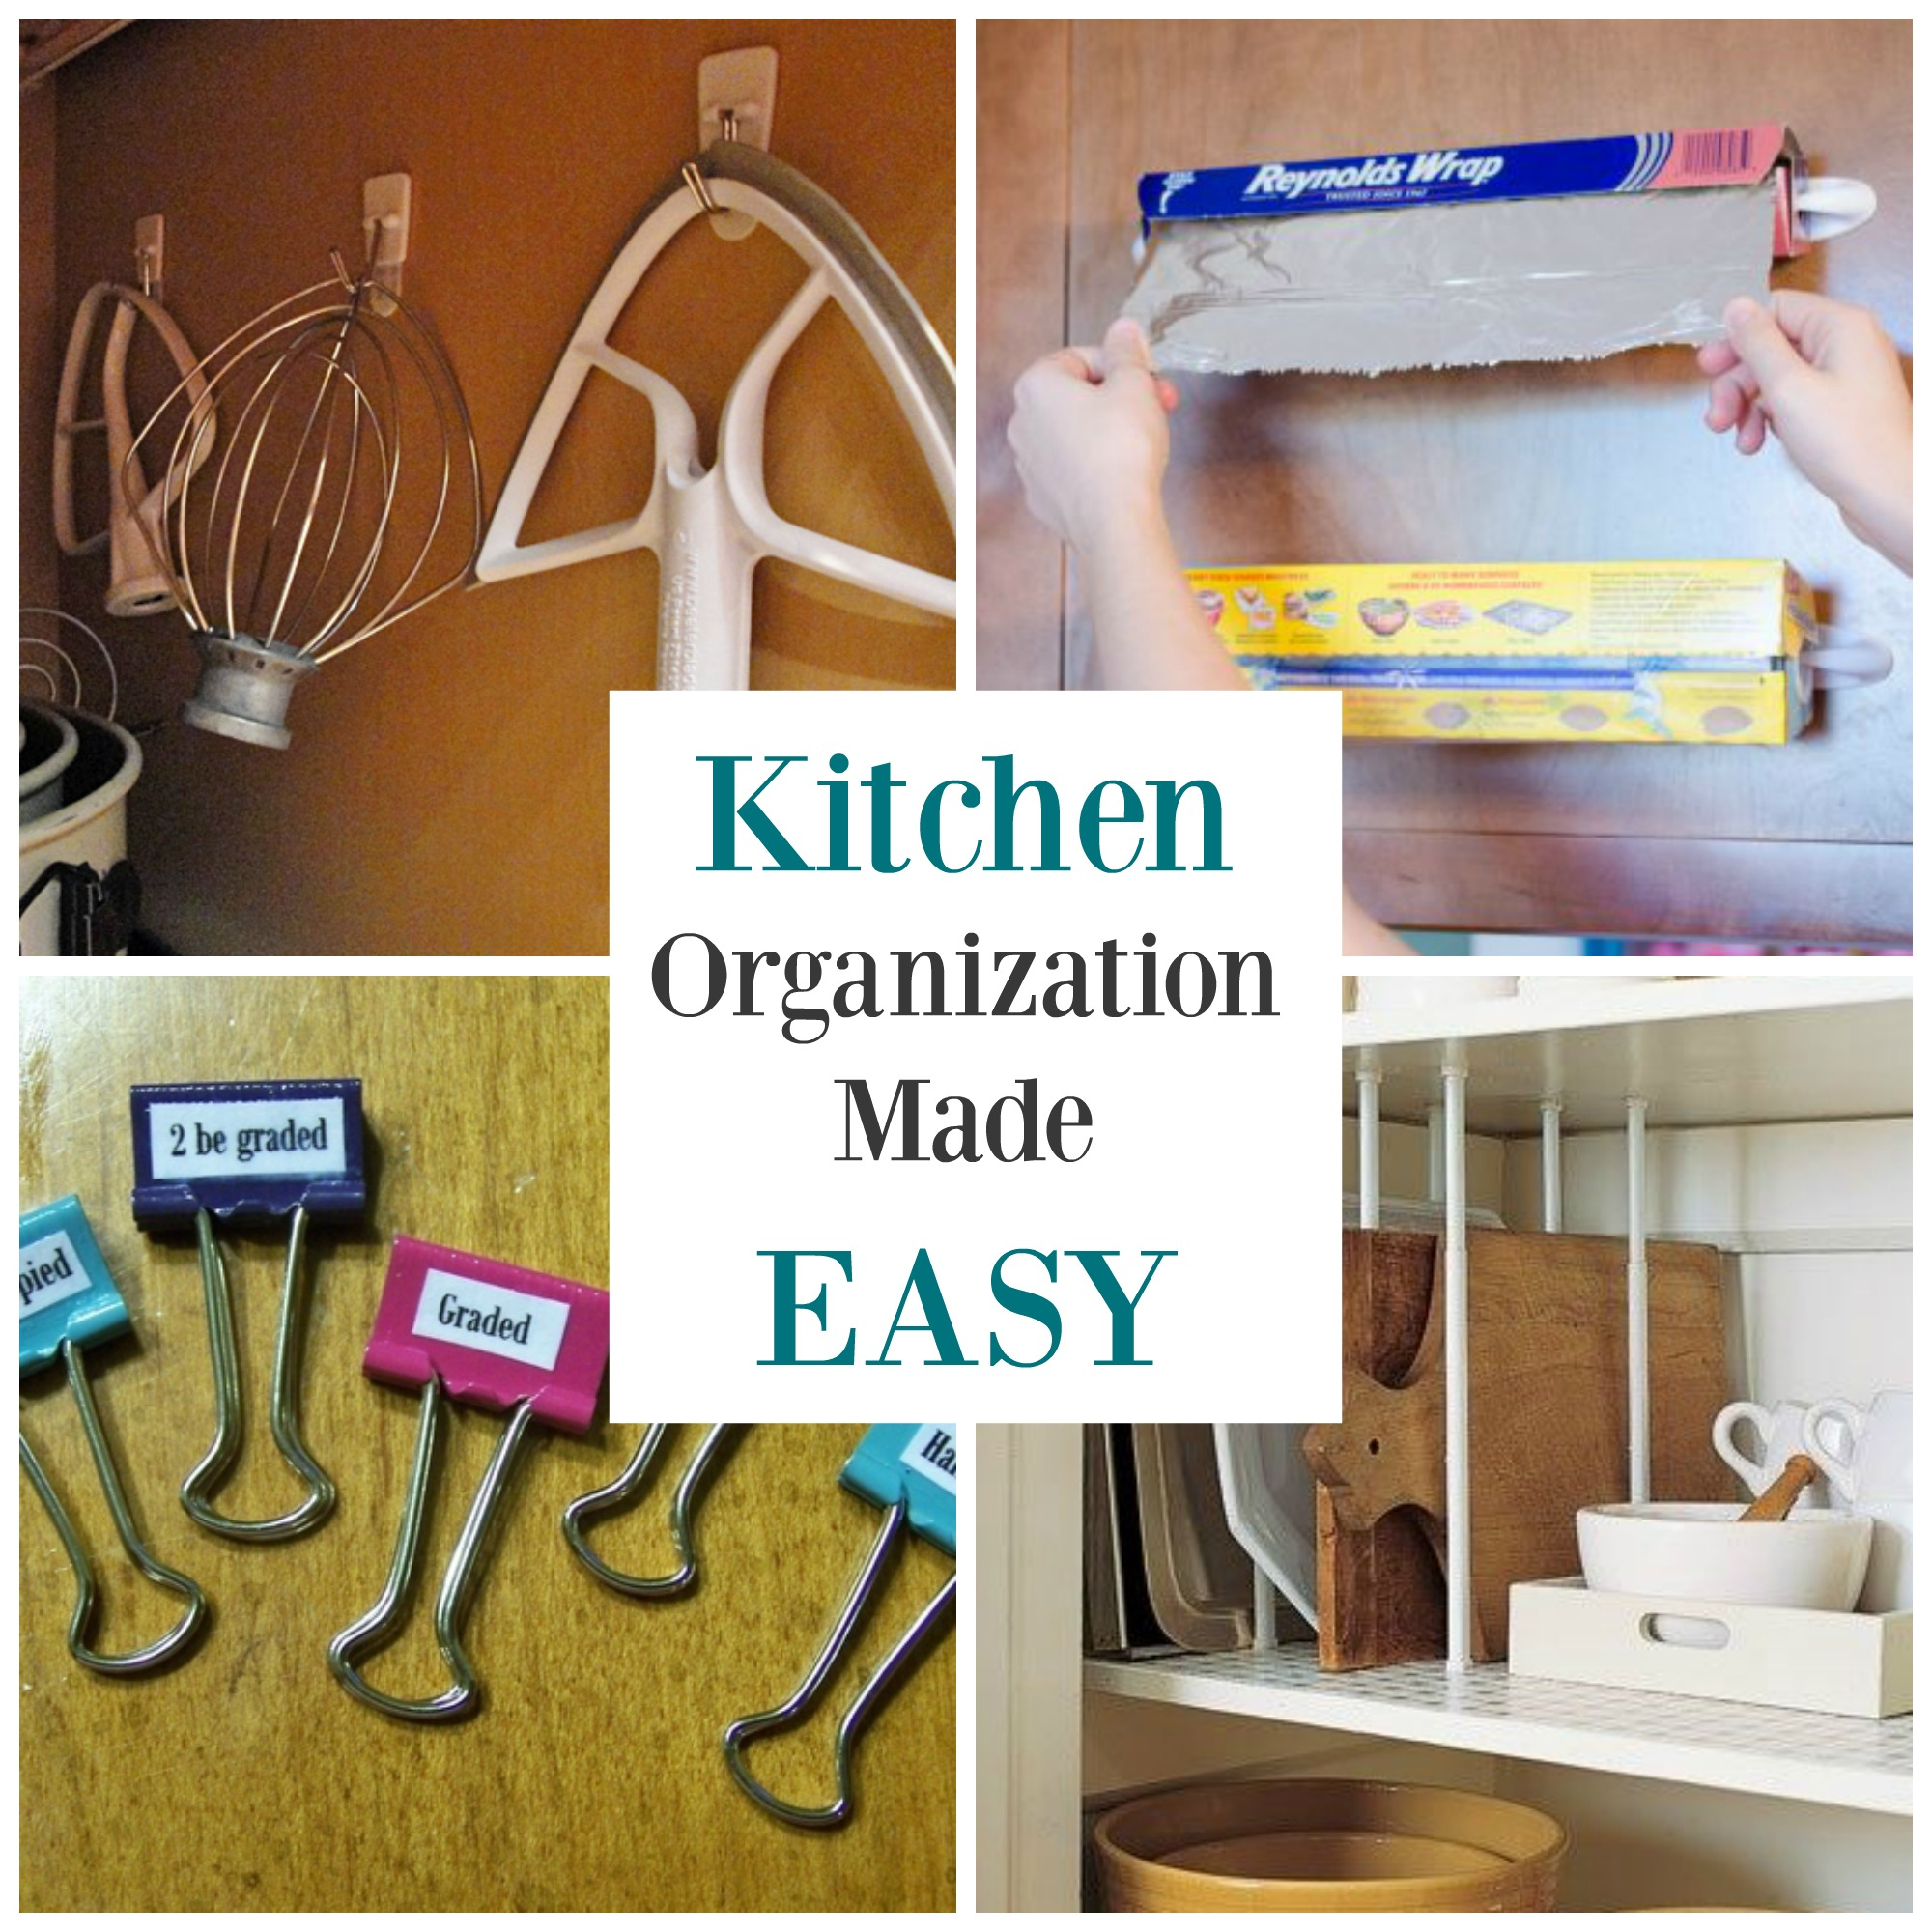 Kitchen Organization Doesn't Have To Be Hard With These 5